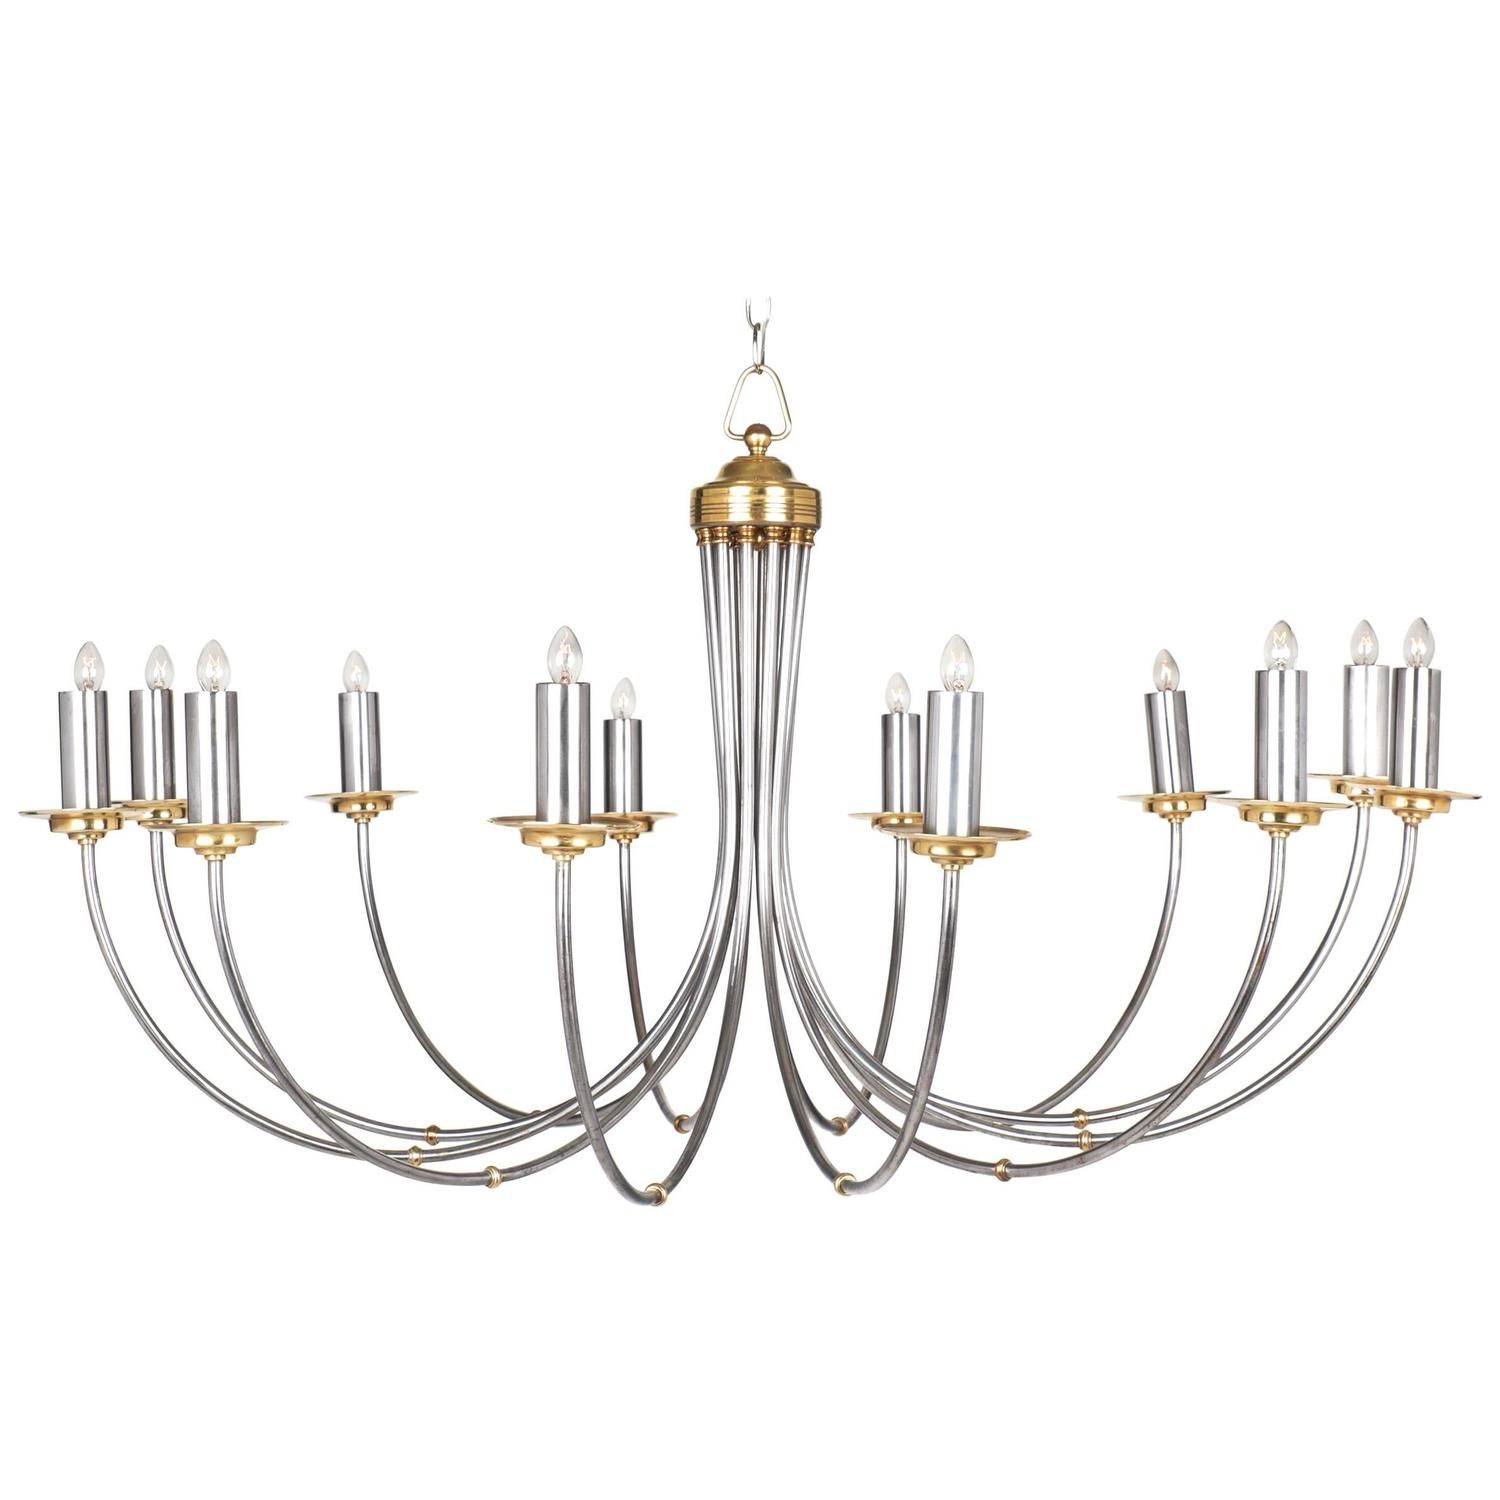 Elegant Modernist Chandelier With 12 Branches Clean Lineixed Metals Of Brushed Steal And Brass From France Circa 1900s